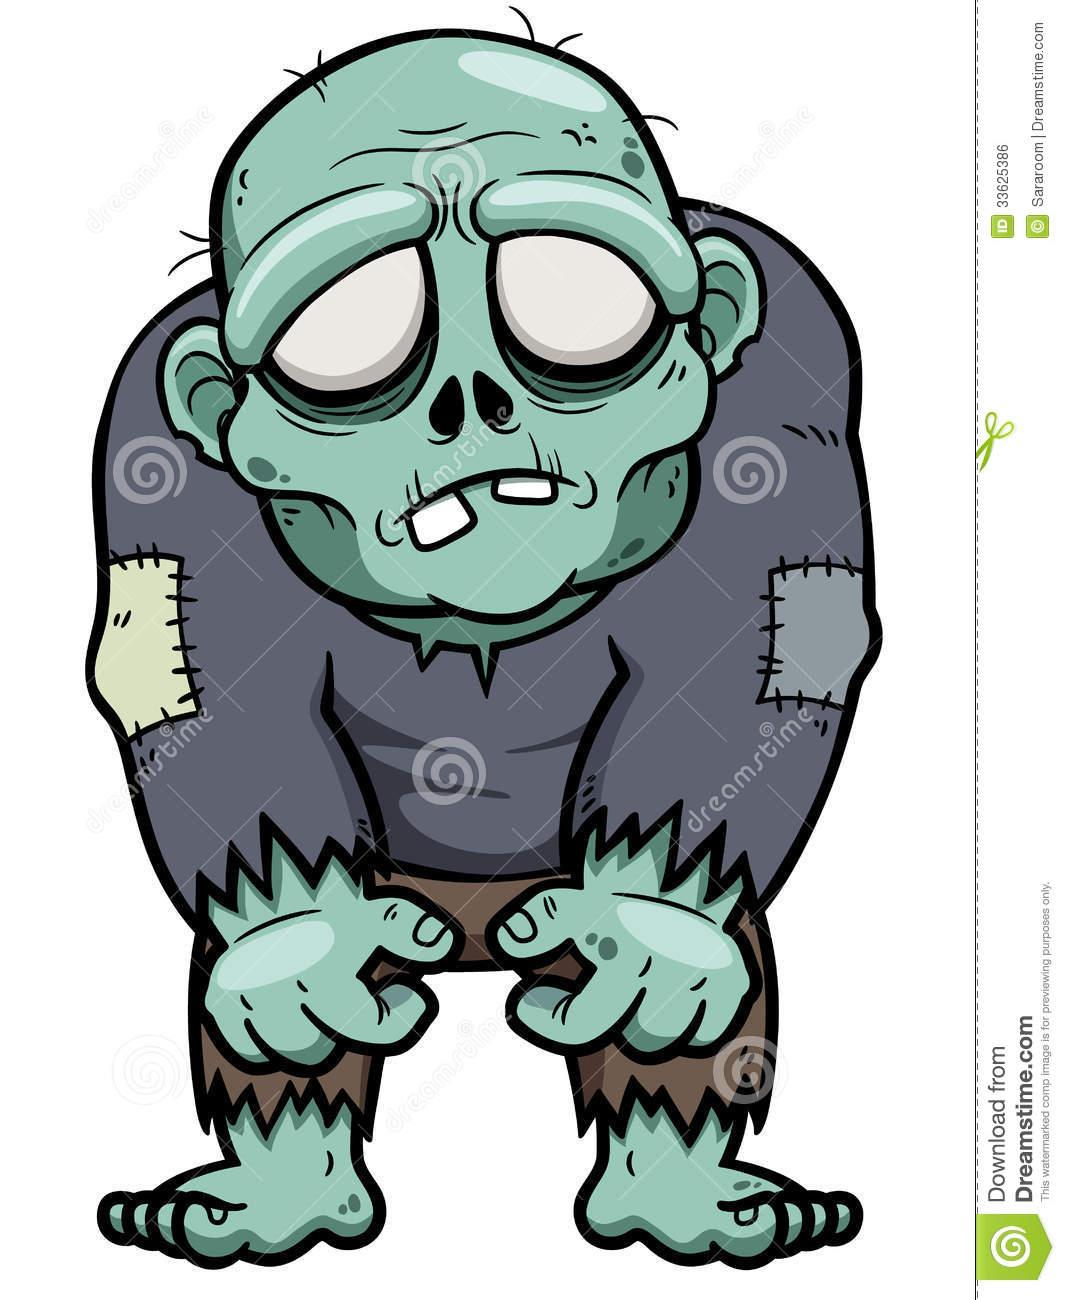 Zombie clipart simple cartoon Search Search illustration zombie Pinterest